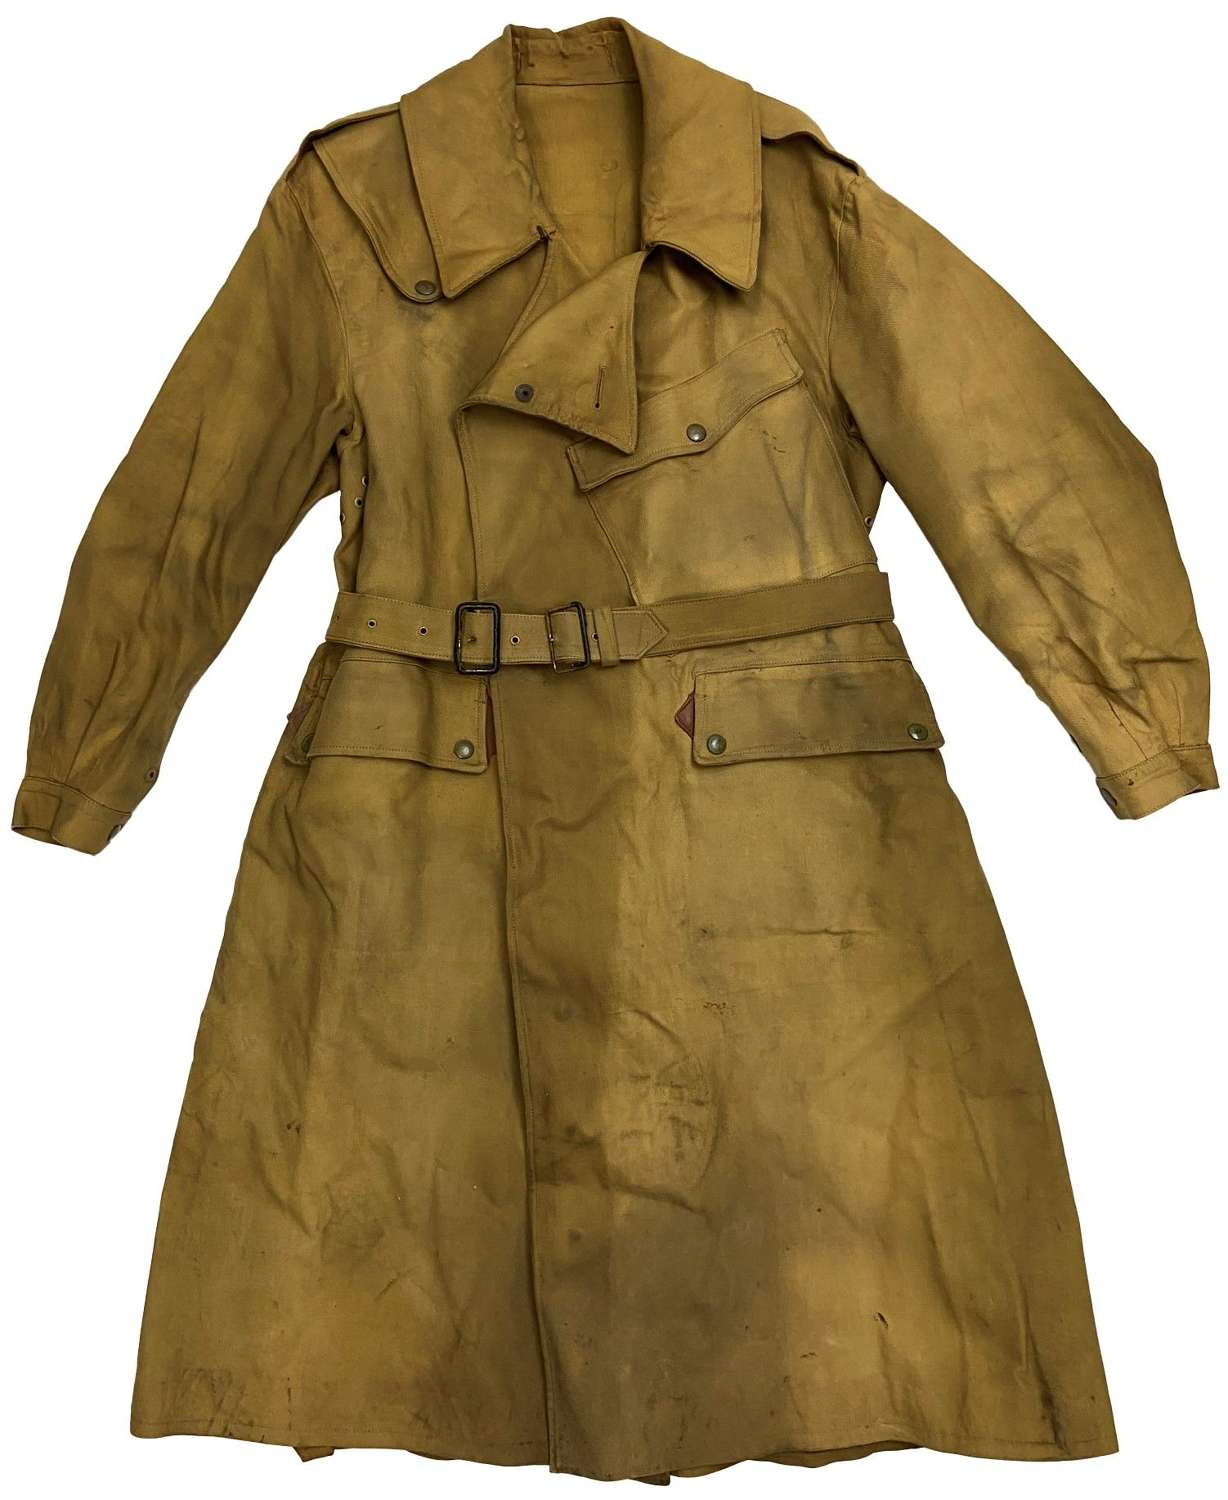 Original 1943 Dated British Army Dispatch Riders Coat by 'Albert Gill'